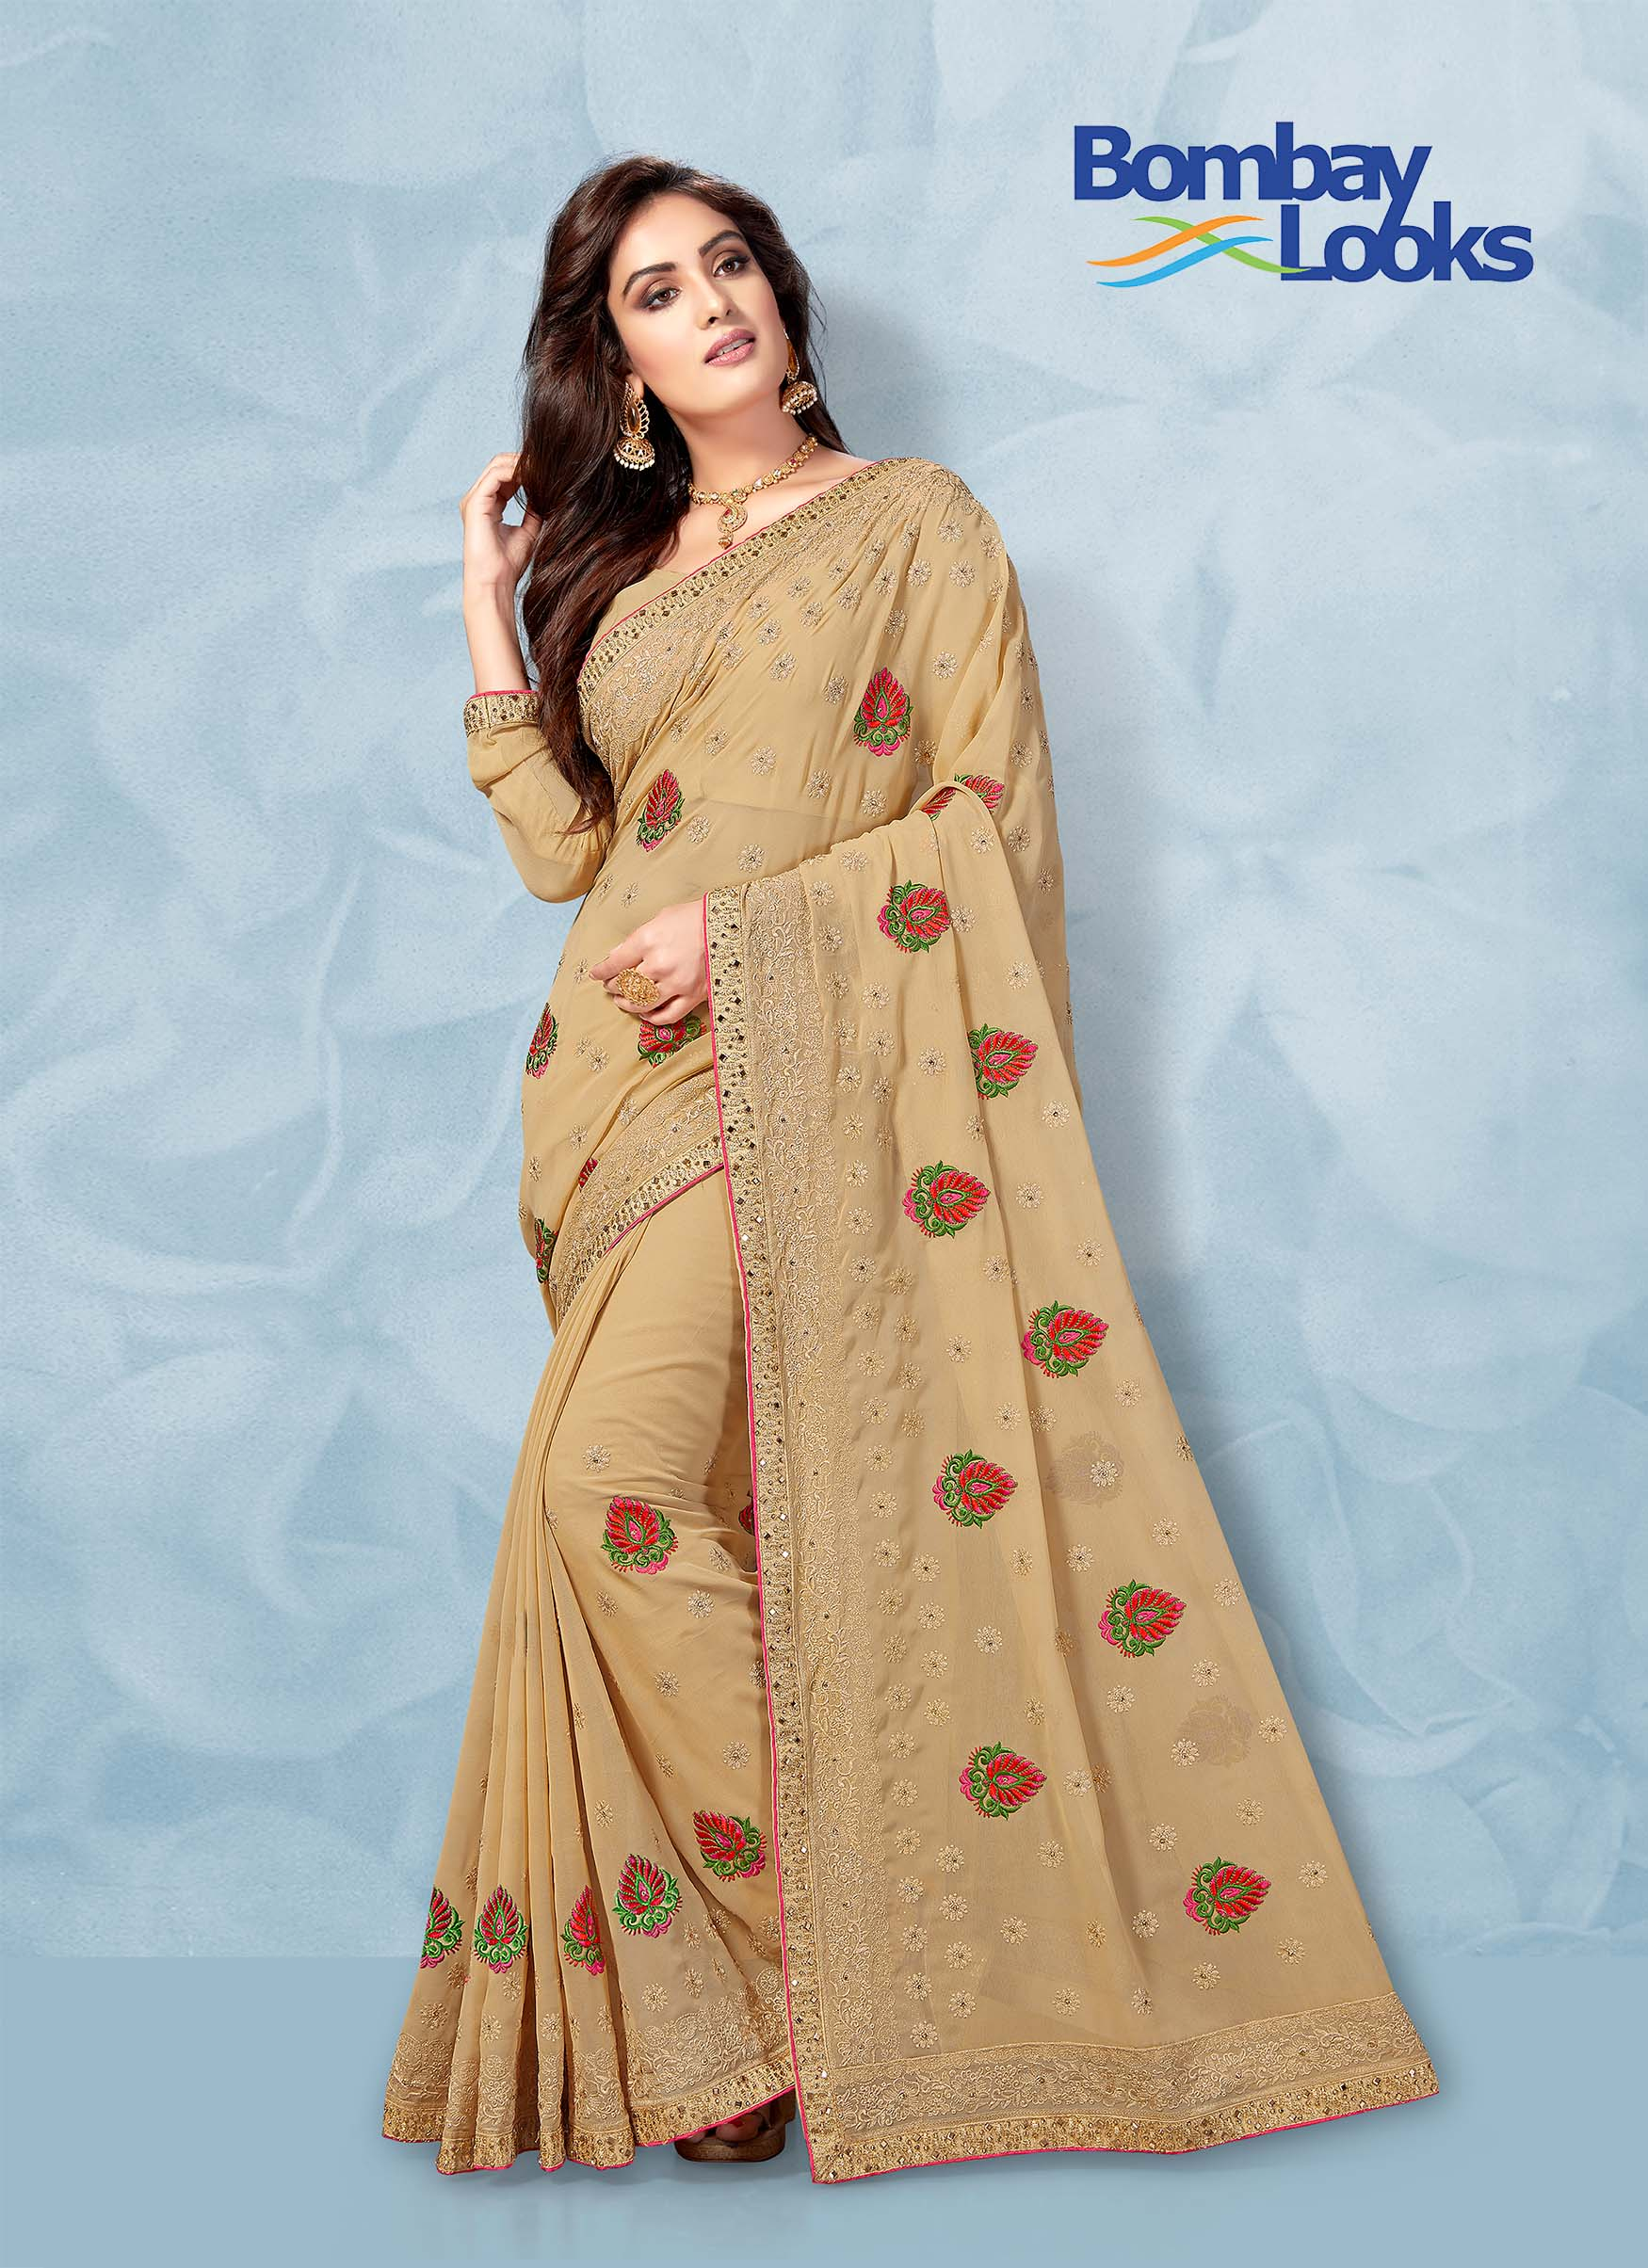 Chikoo colour Georgette saree with colourful embroidery